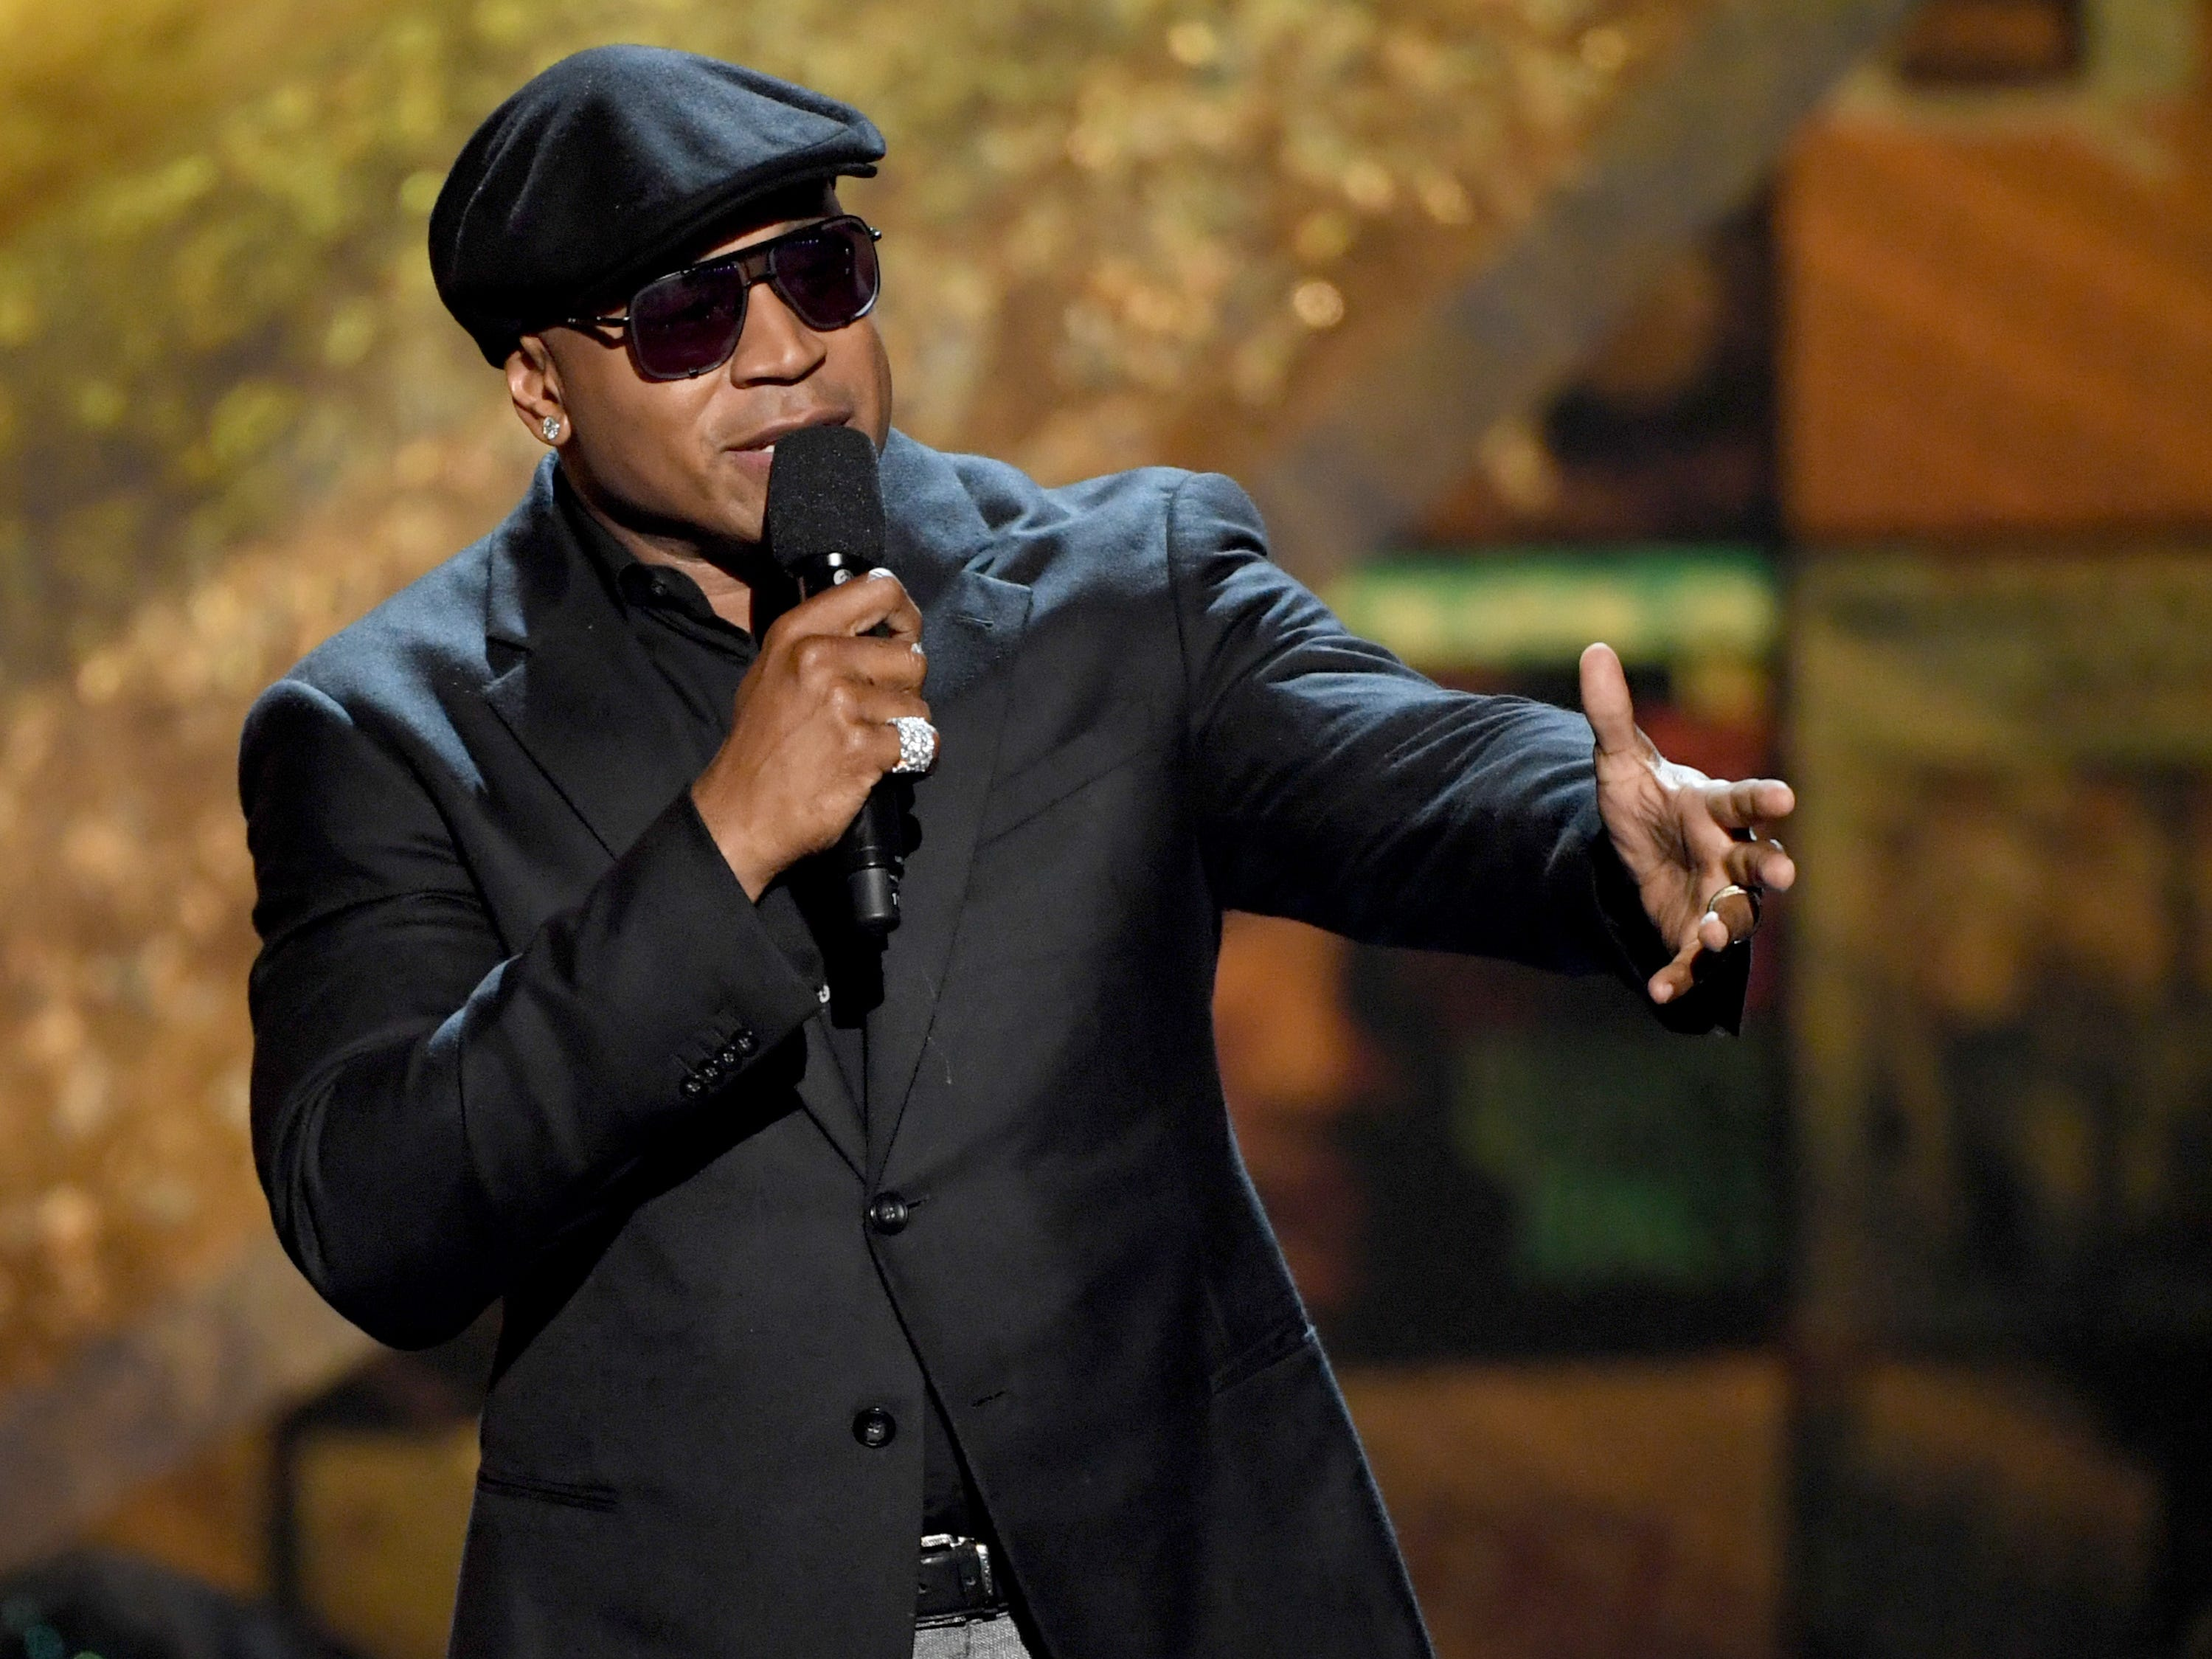 LL Cool J. Here, he speaks onstage at Q85: A Musical Celebration for Quincy Jones at the Microsoft Theatre Sept. 25, 2018. in Los Angeles, California.